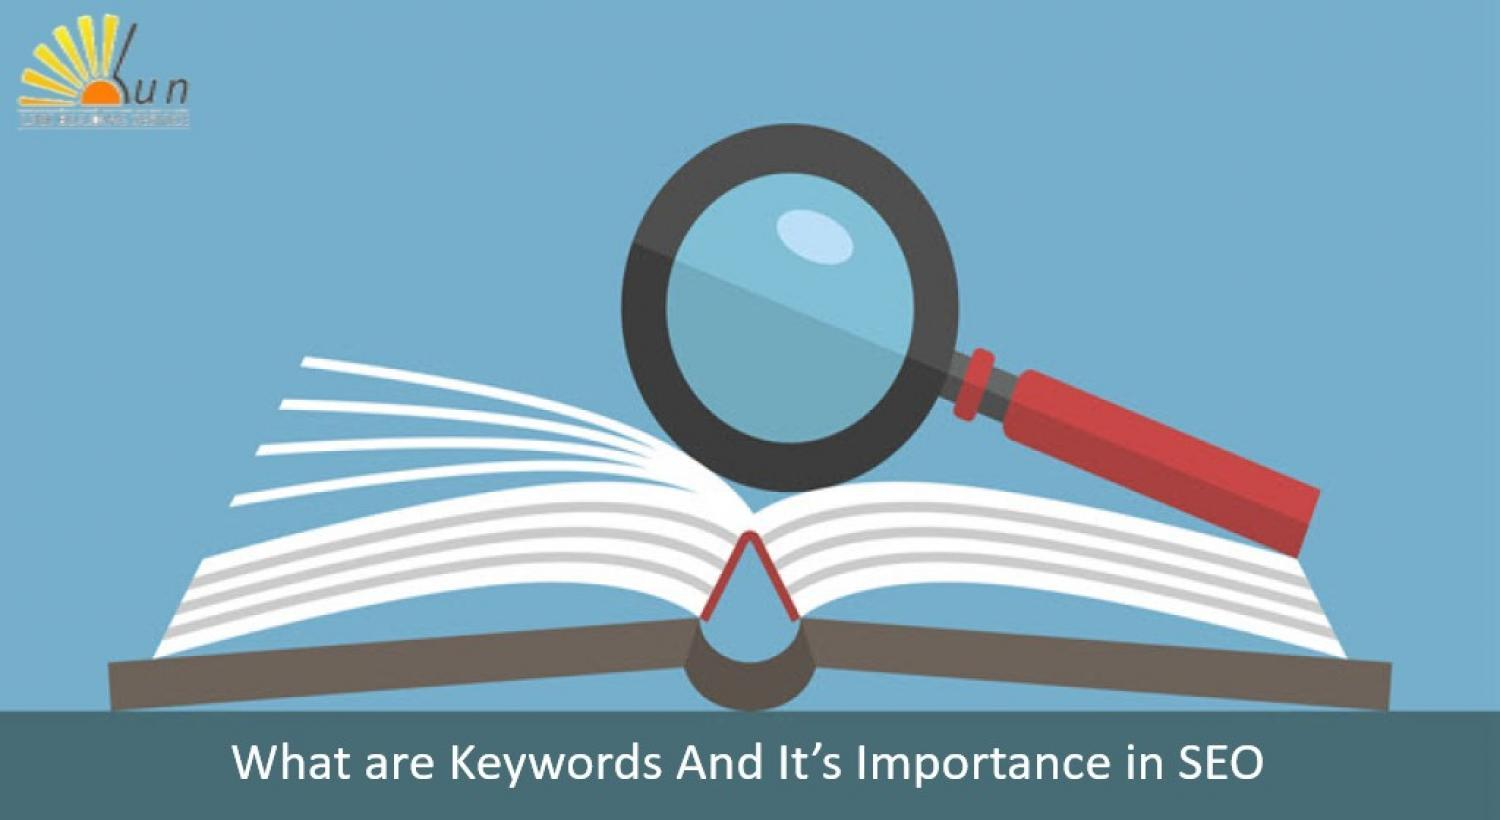 What are Keywords And Its Importance in SEO